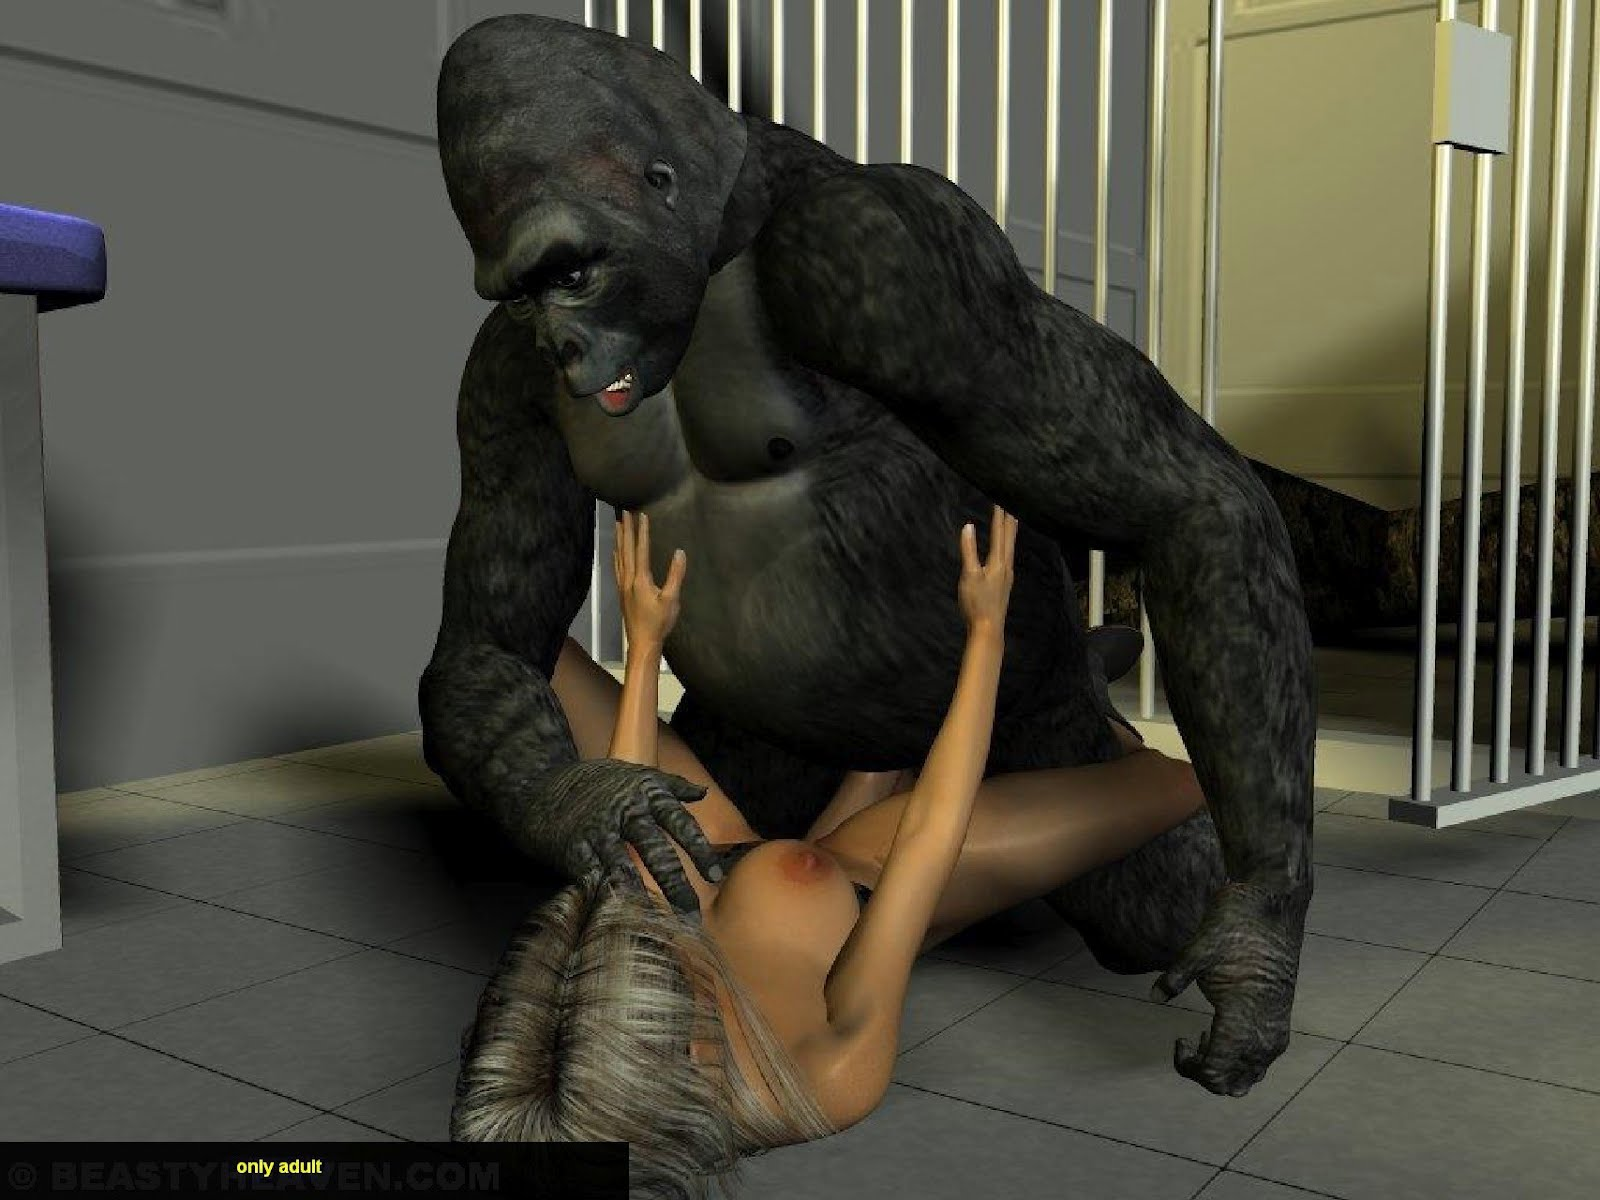 gorilla and naked woman